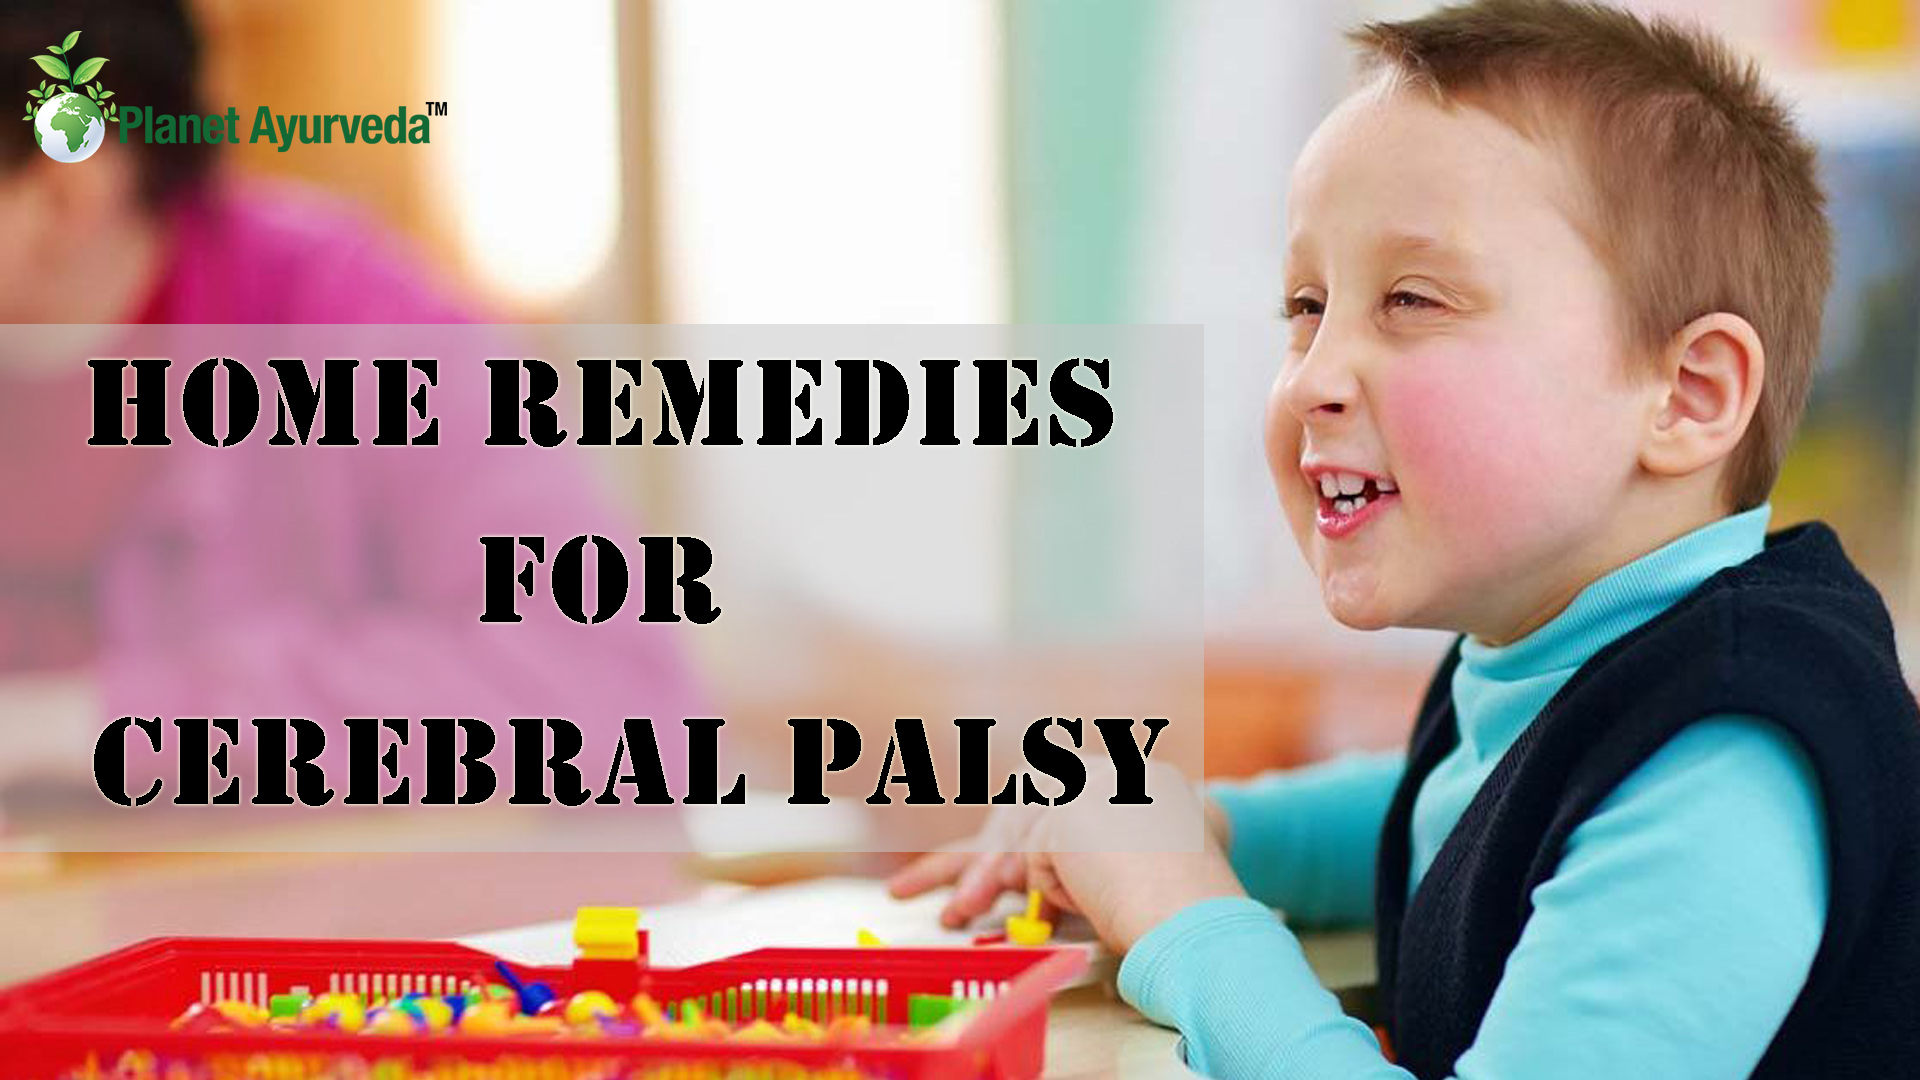 Home Remedies for Cerebral Palsy